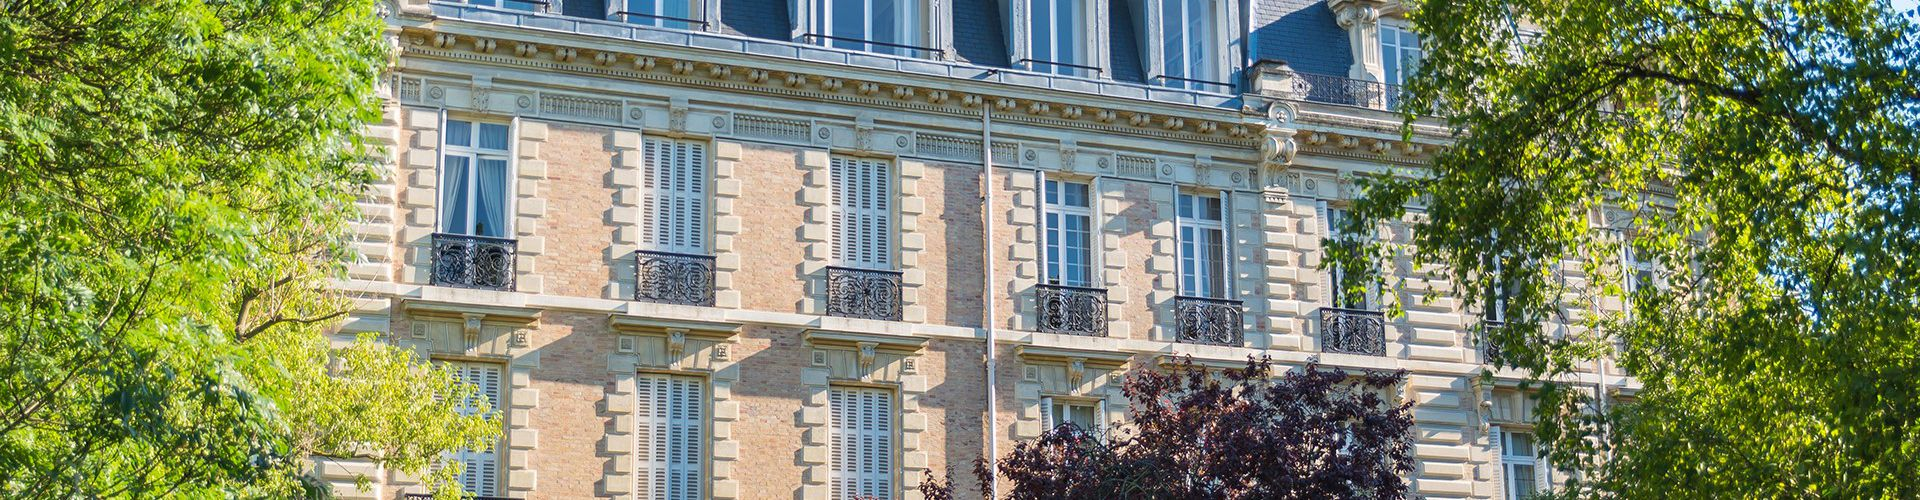 Estimation immobilier Neuilly Saint James